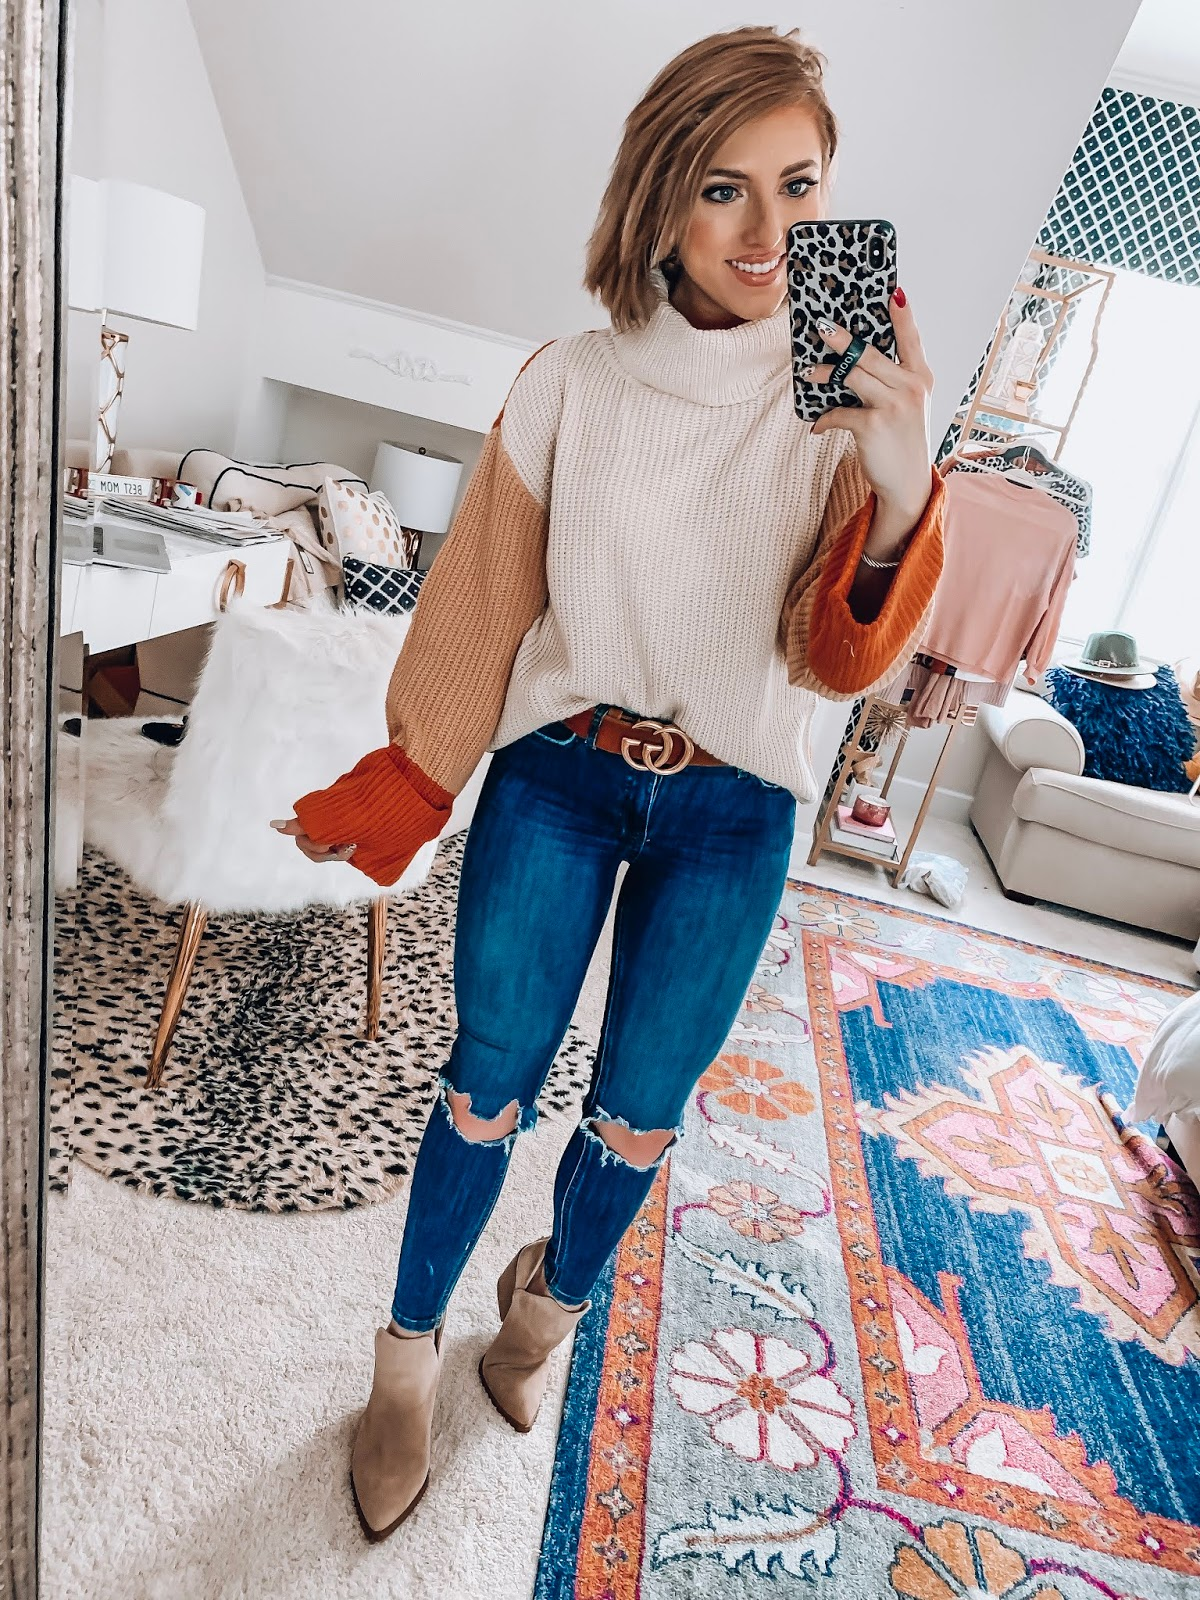 Recent Amazon Finds: $29 Color Block Sweater - Something Delightful Blog #fallstyle #affordablefashion #amazonfashion